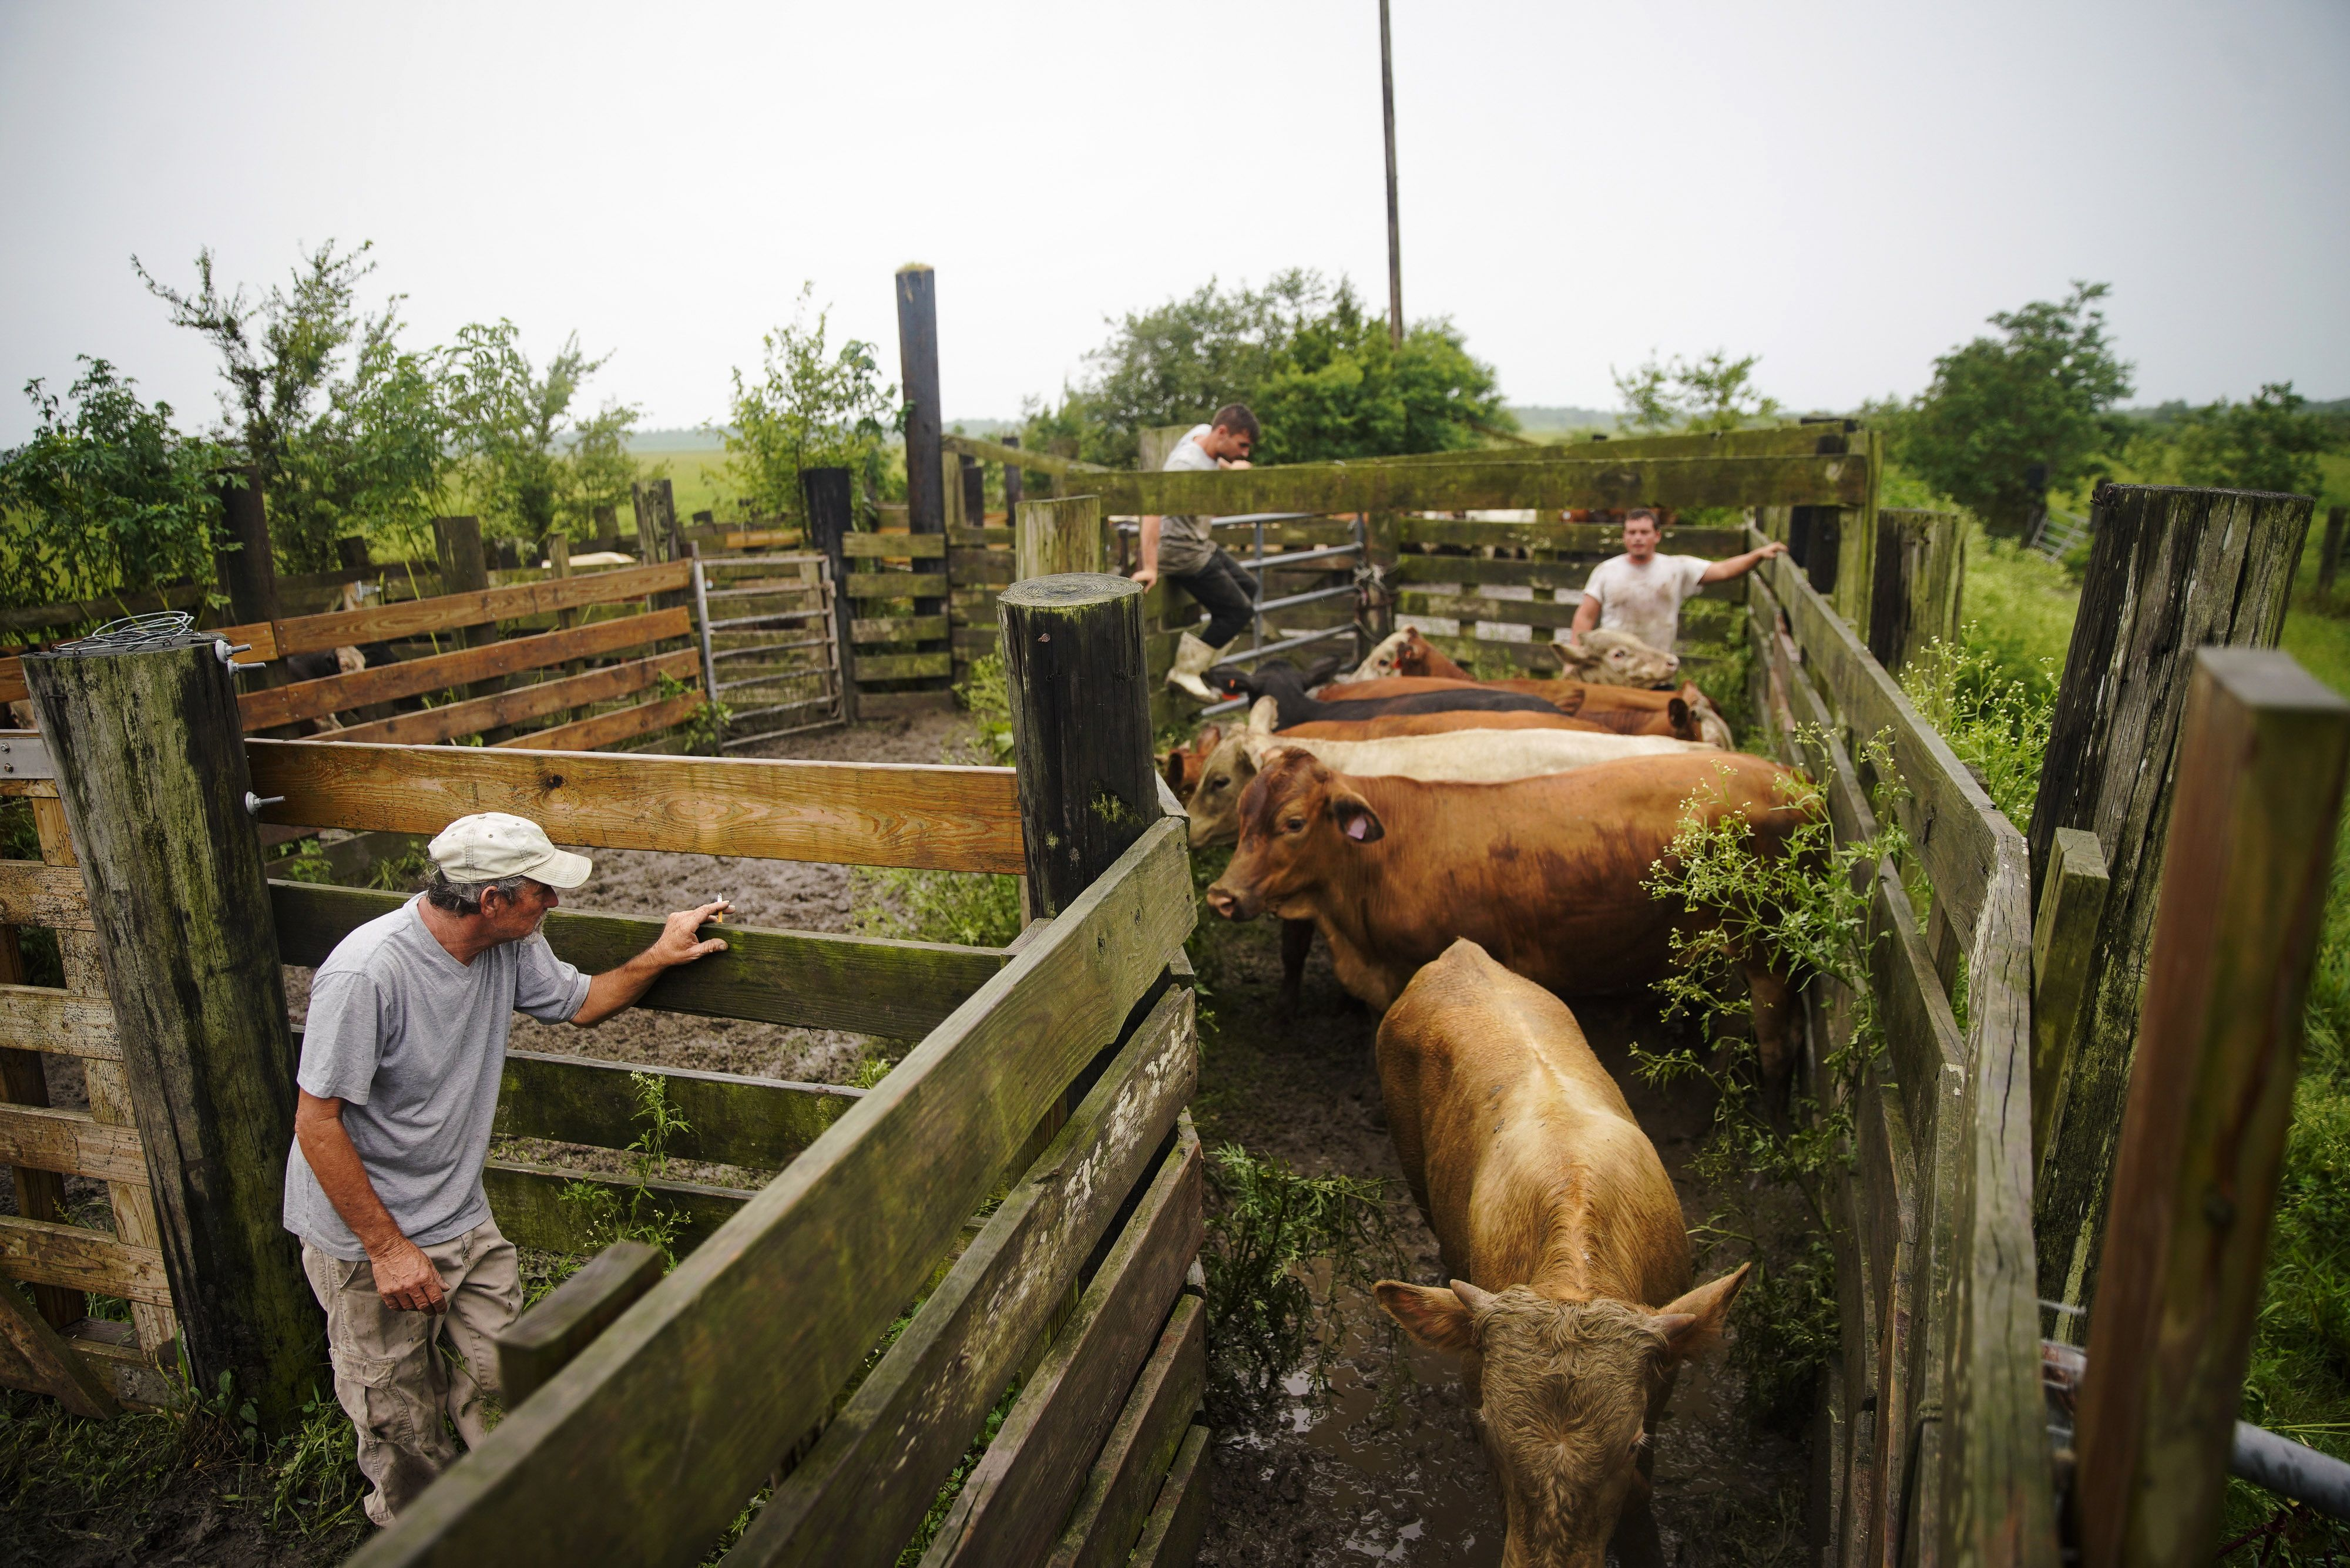 Extreme heat wave hits US farmers already suffering from flooding